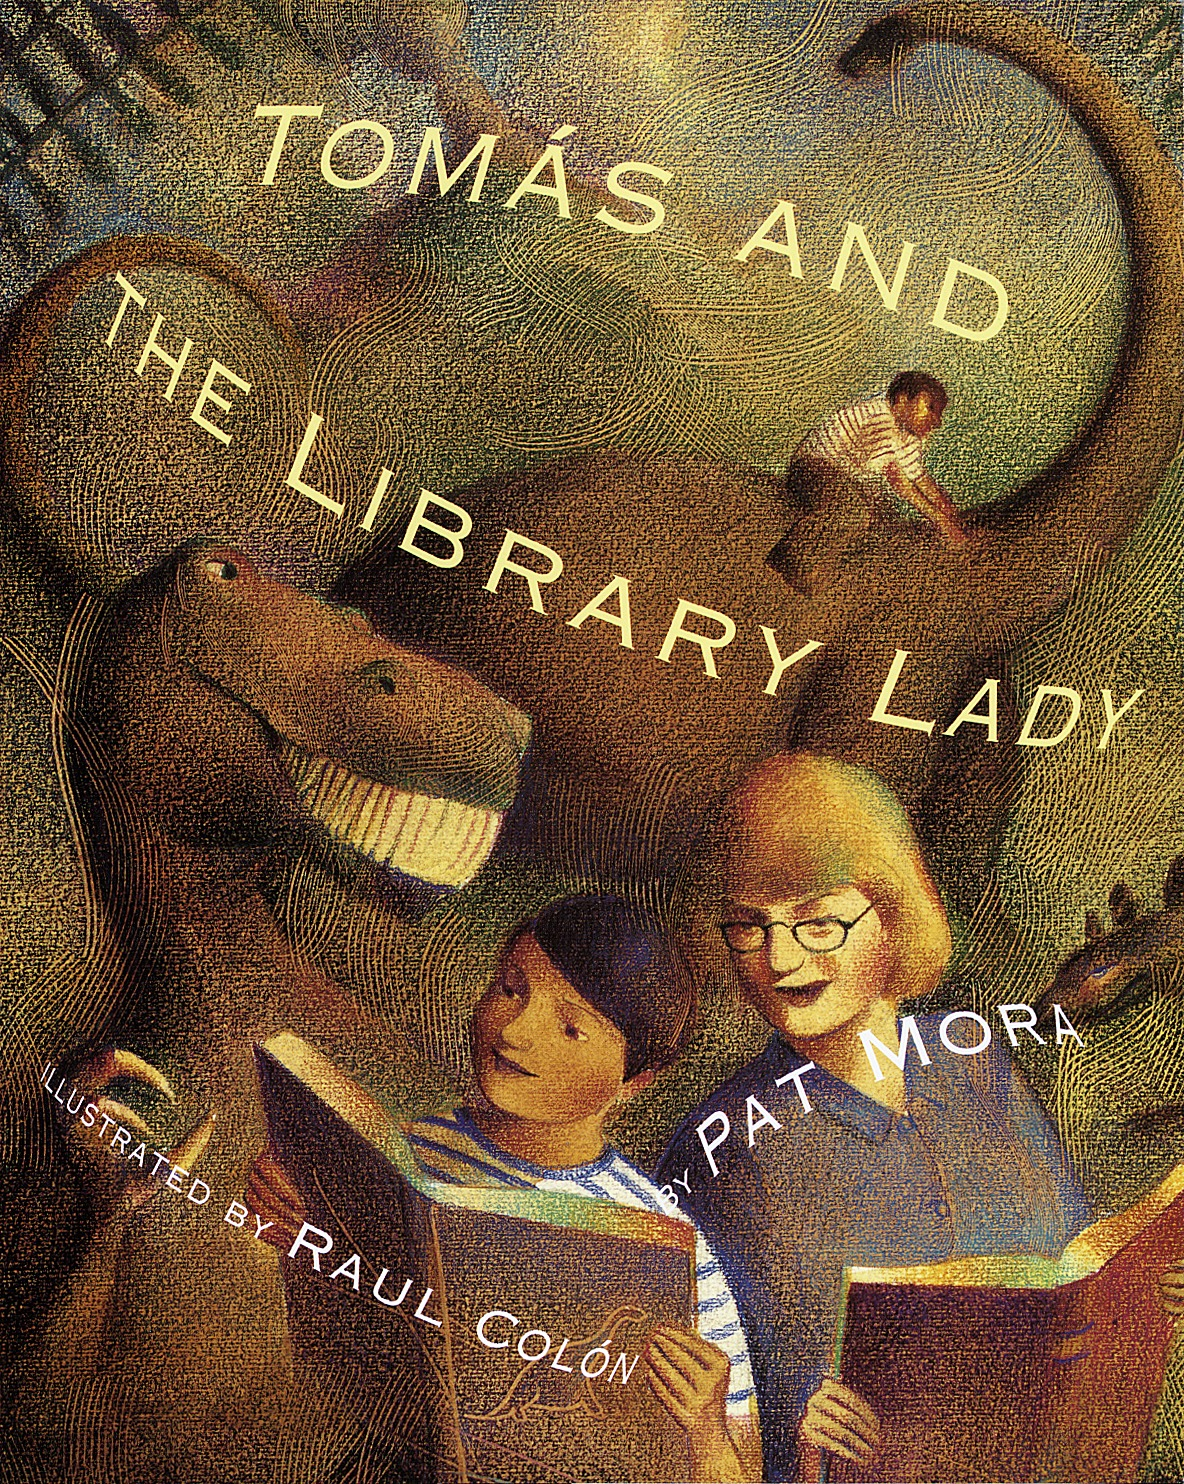 Tomás and the Library Lady By Pat Mora, illustrated by Raúl Colón